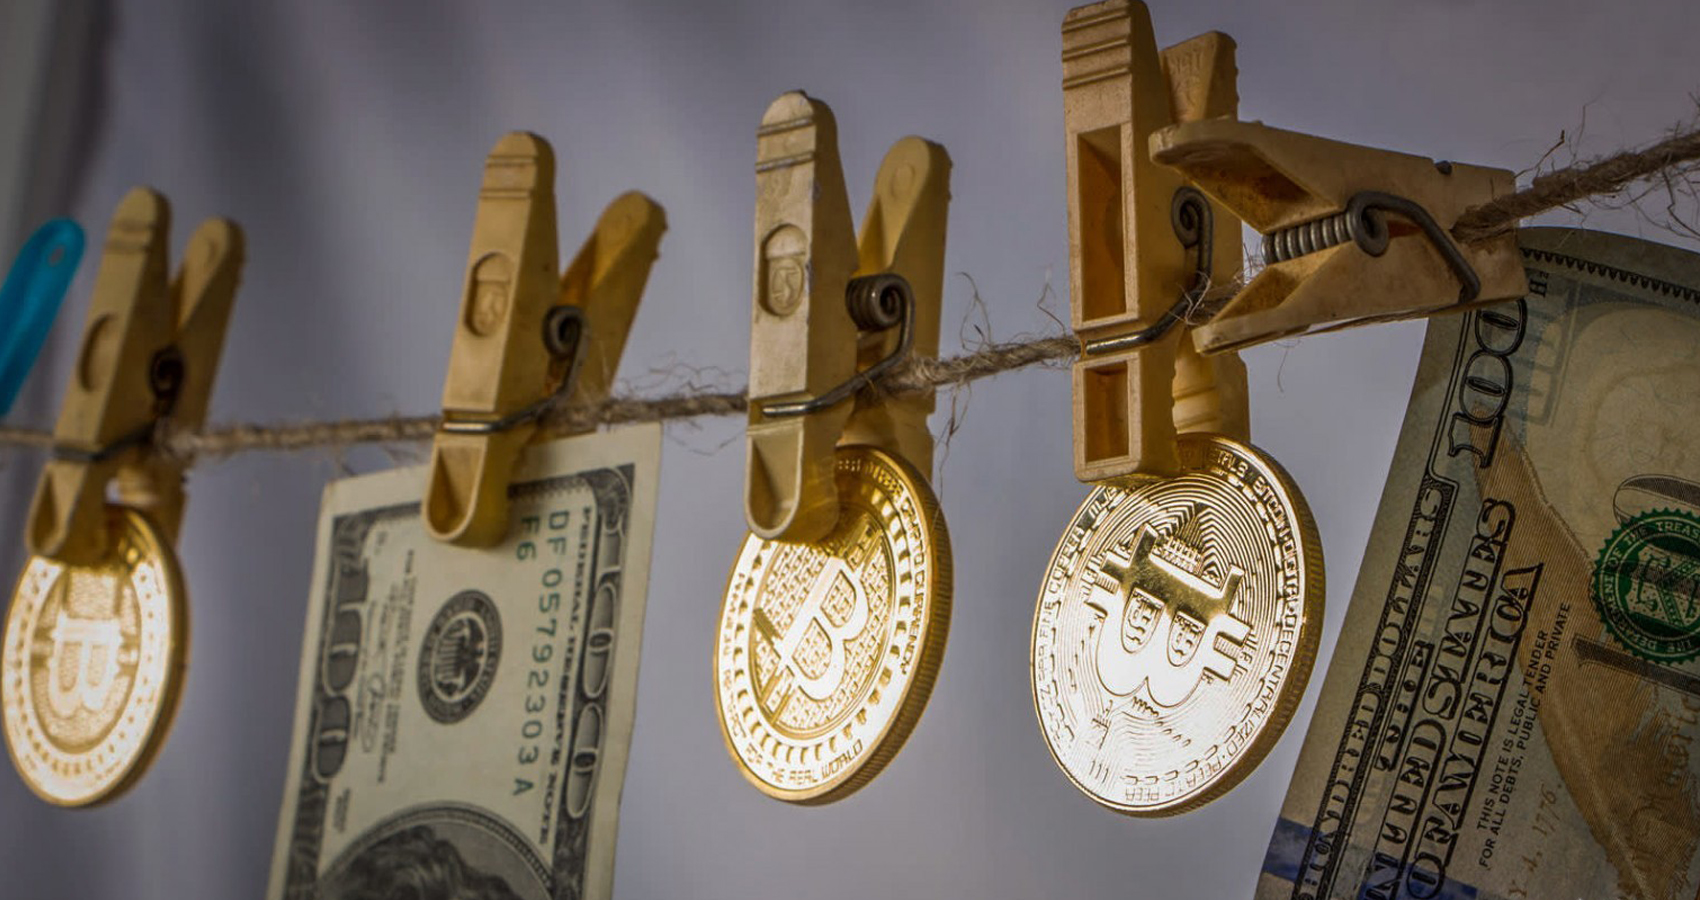 Increasing the use of digital assets in money laundering